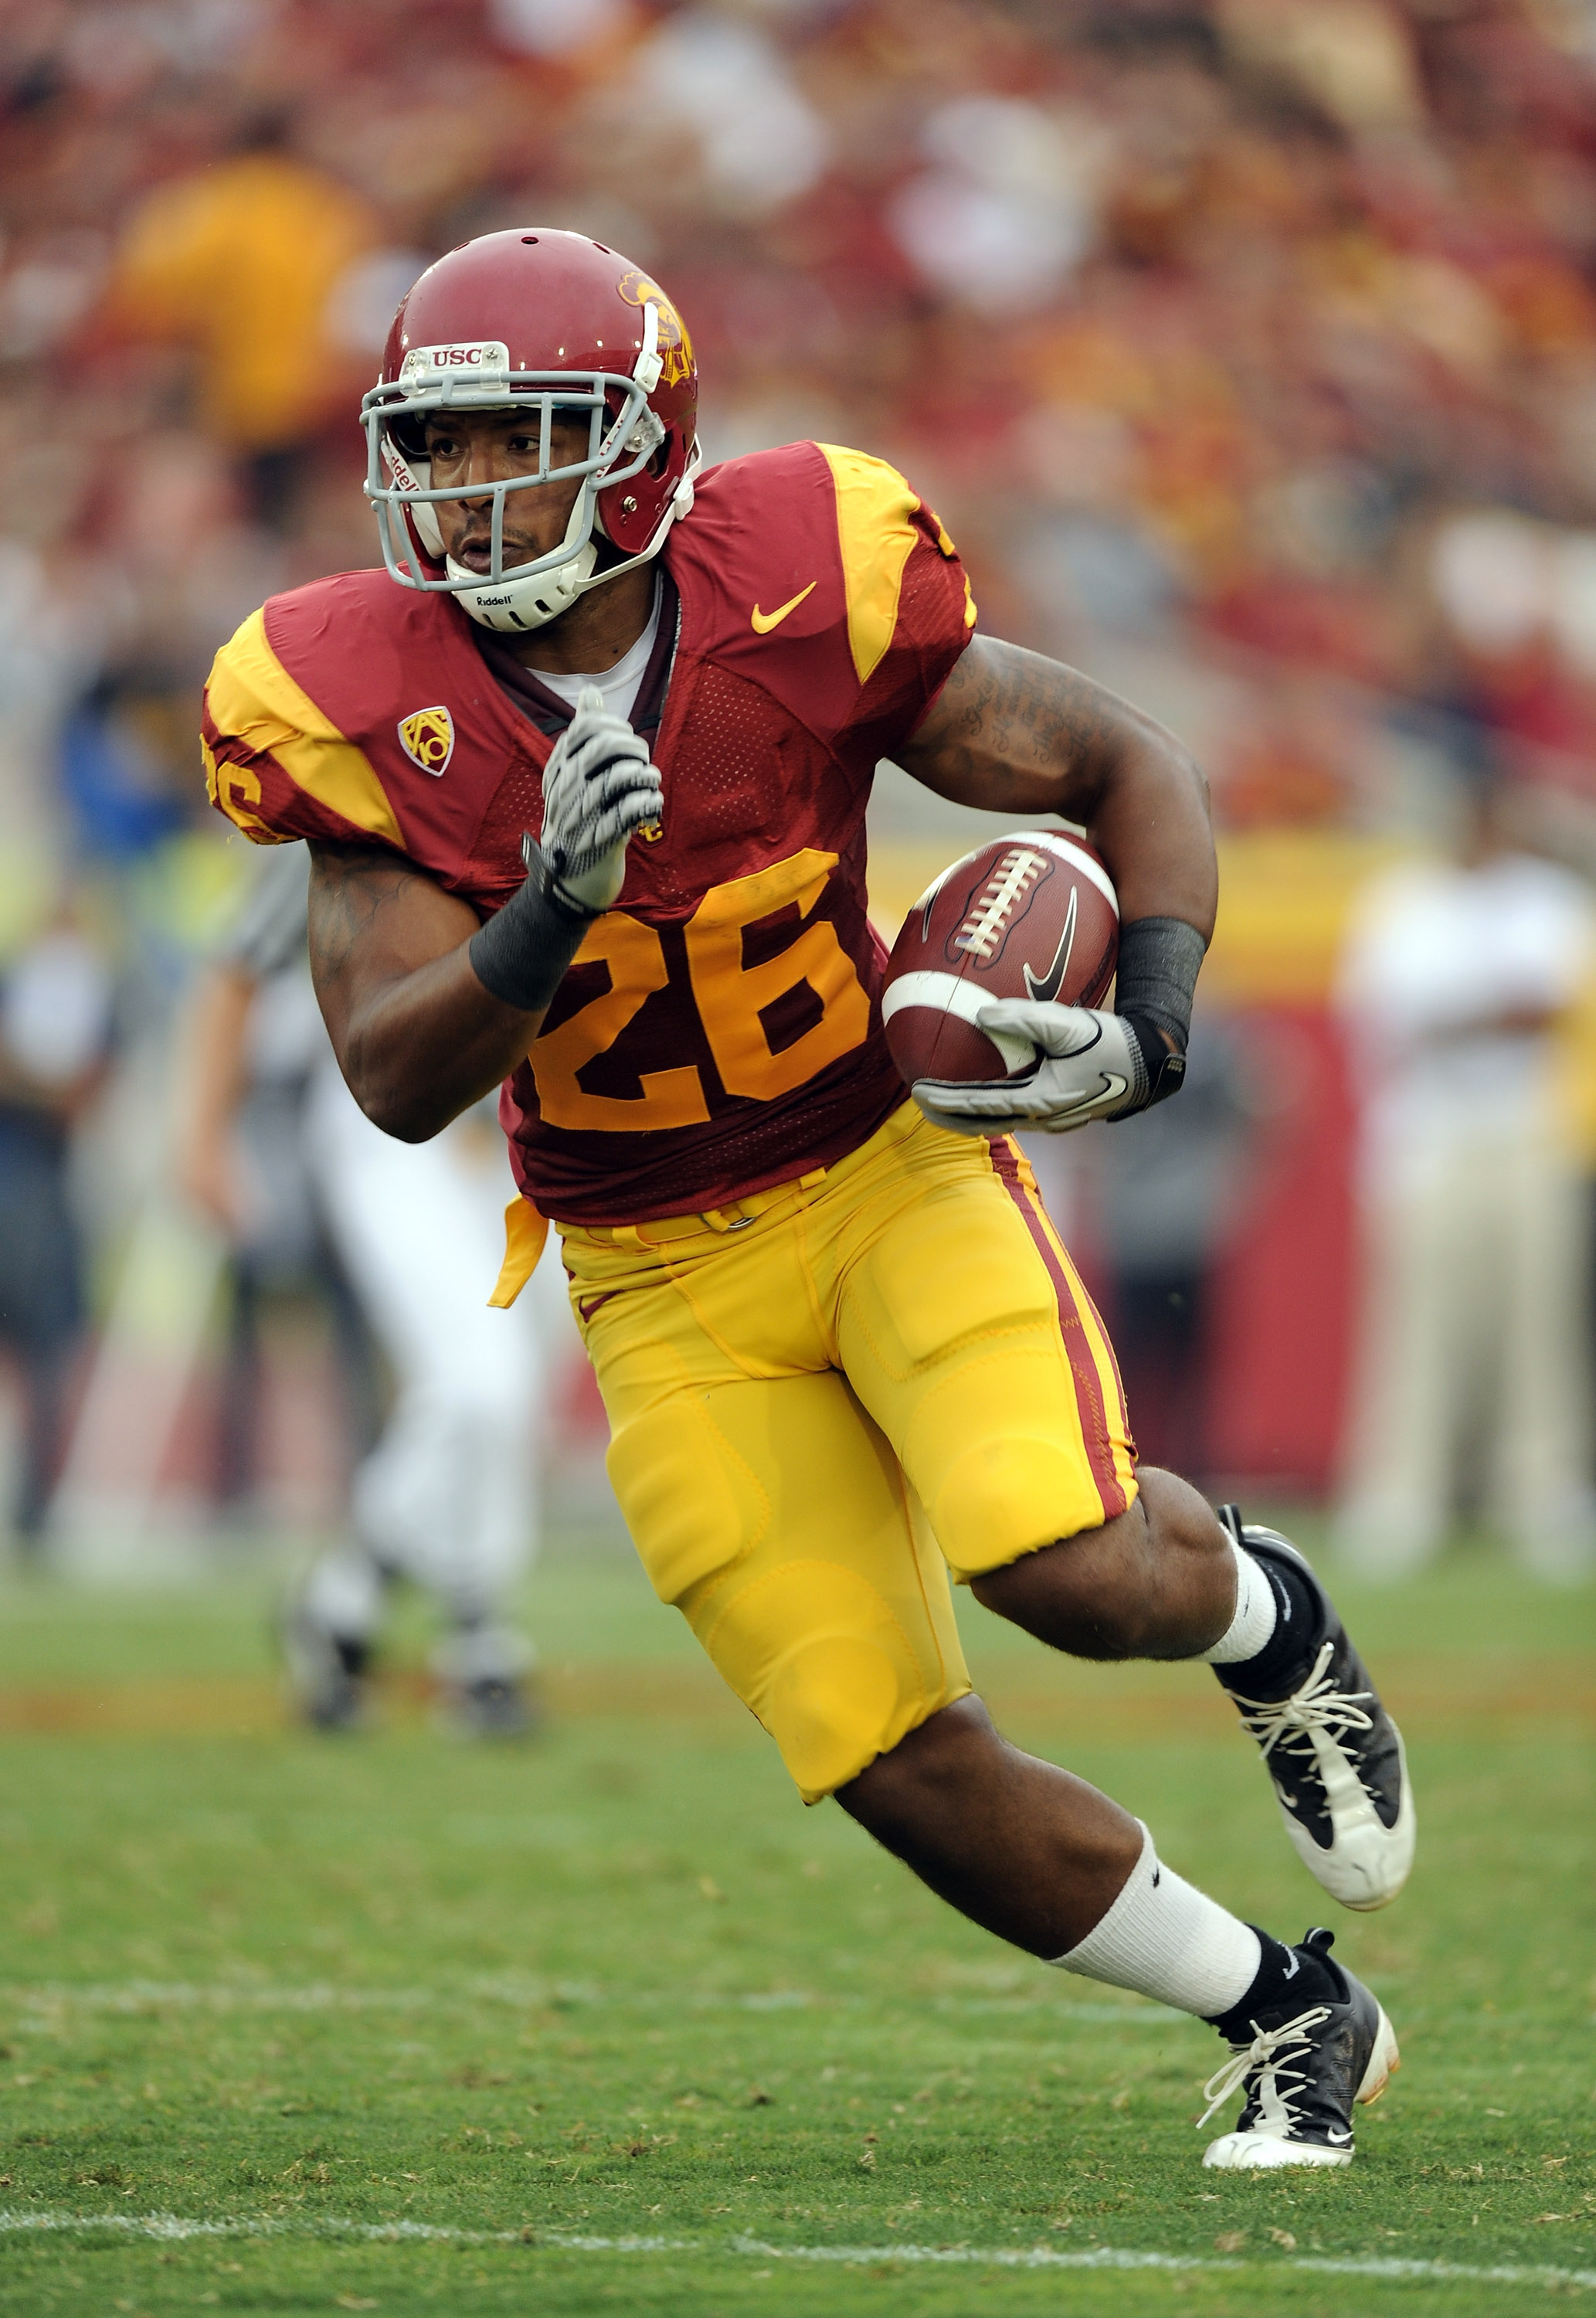 LOS ANGELES, CA - OCTOBER 16:  Marc Tyler #26 of the USC Trojans rushes the ball during the game against the California Golden Bears at Los Angeles Memorial Coliseum on October 16, 2010 in Los Angeles, California.  (Photo by Harry How/Getty Images)